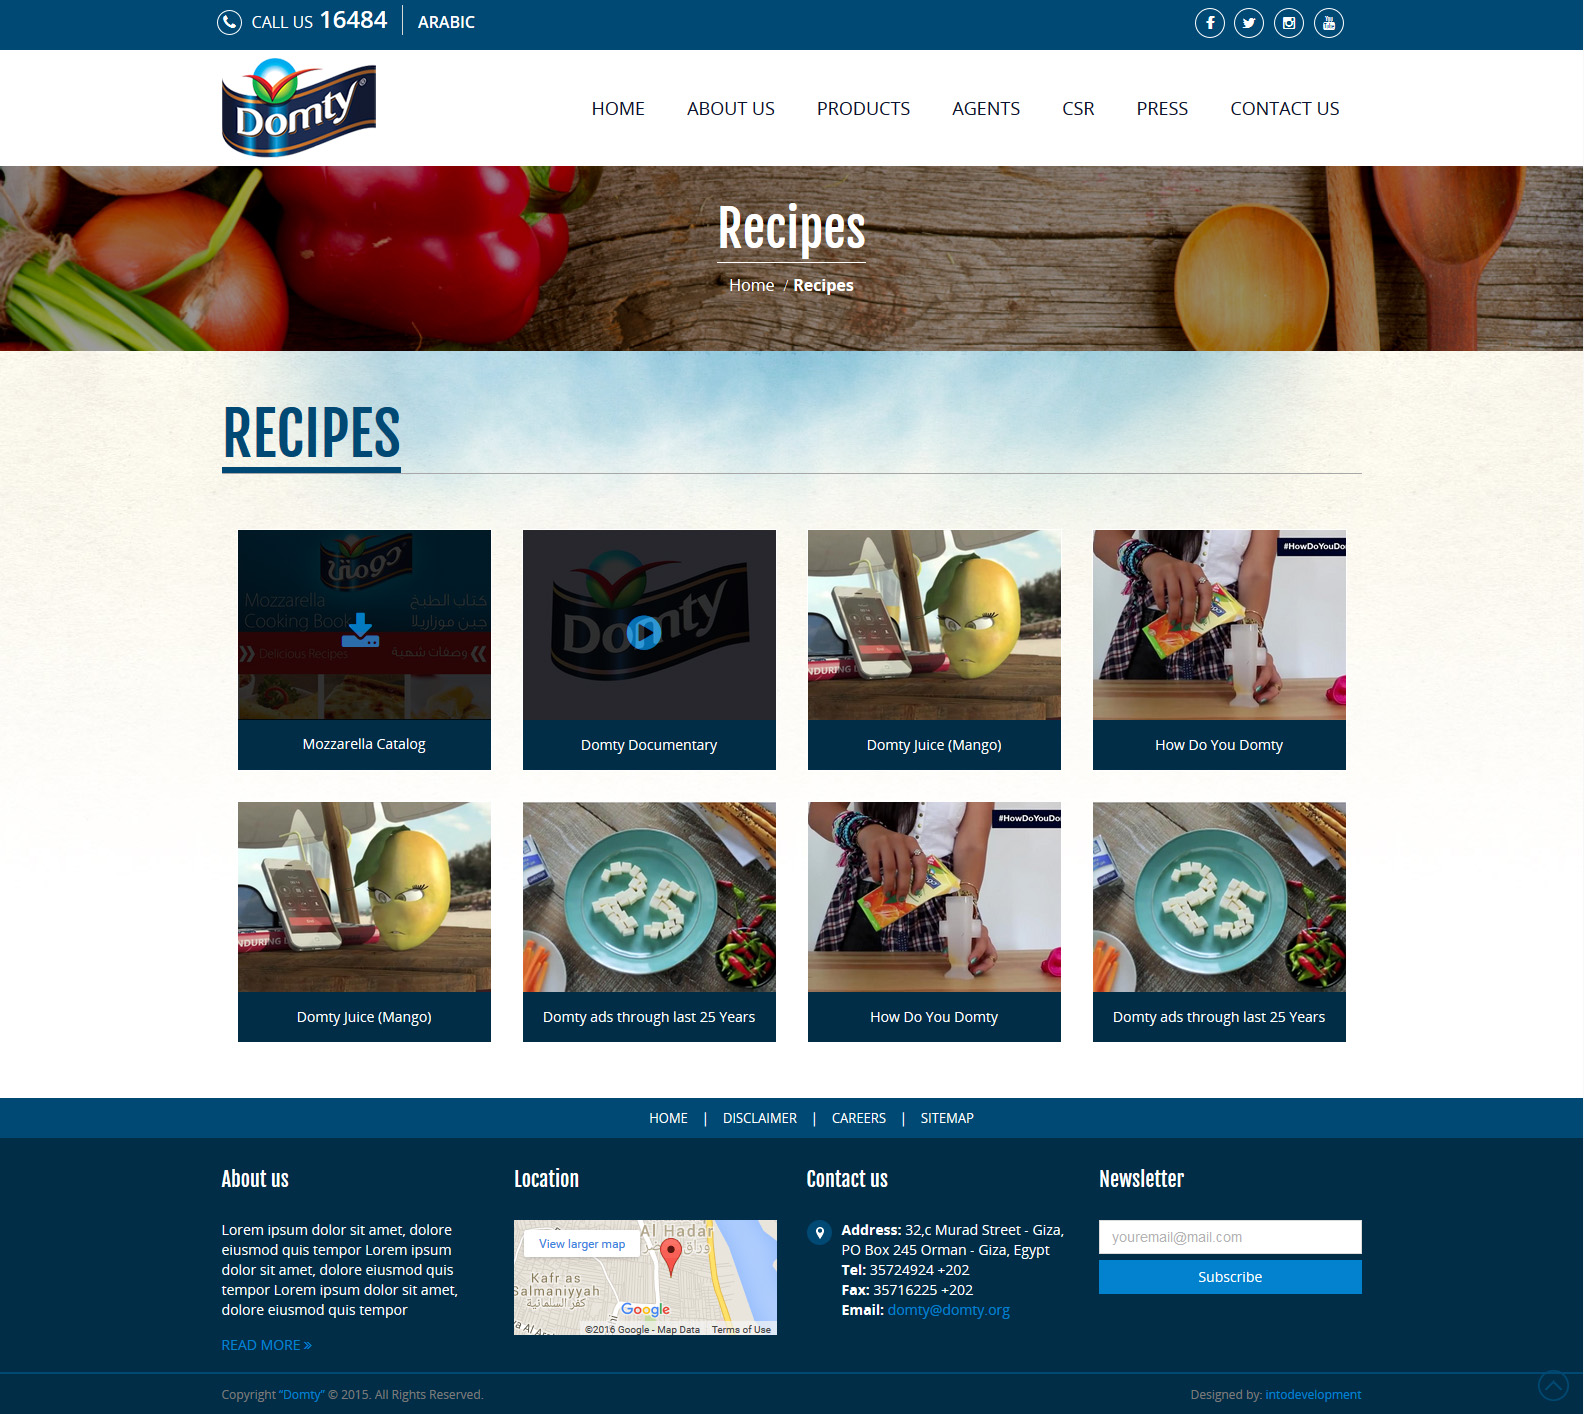 Domty-Recipes-web design Egypt-web design Doha